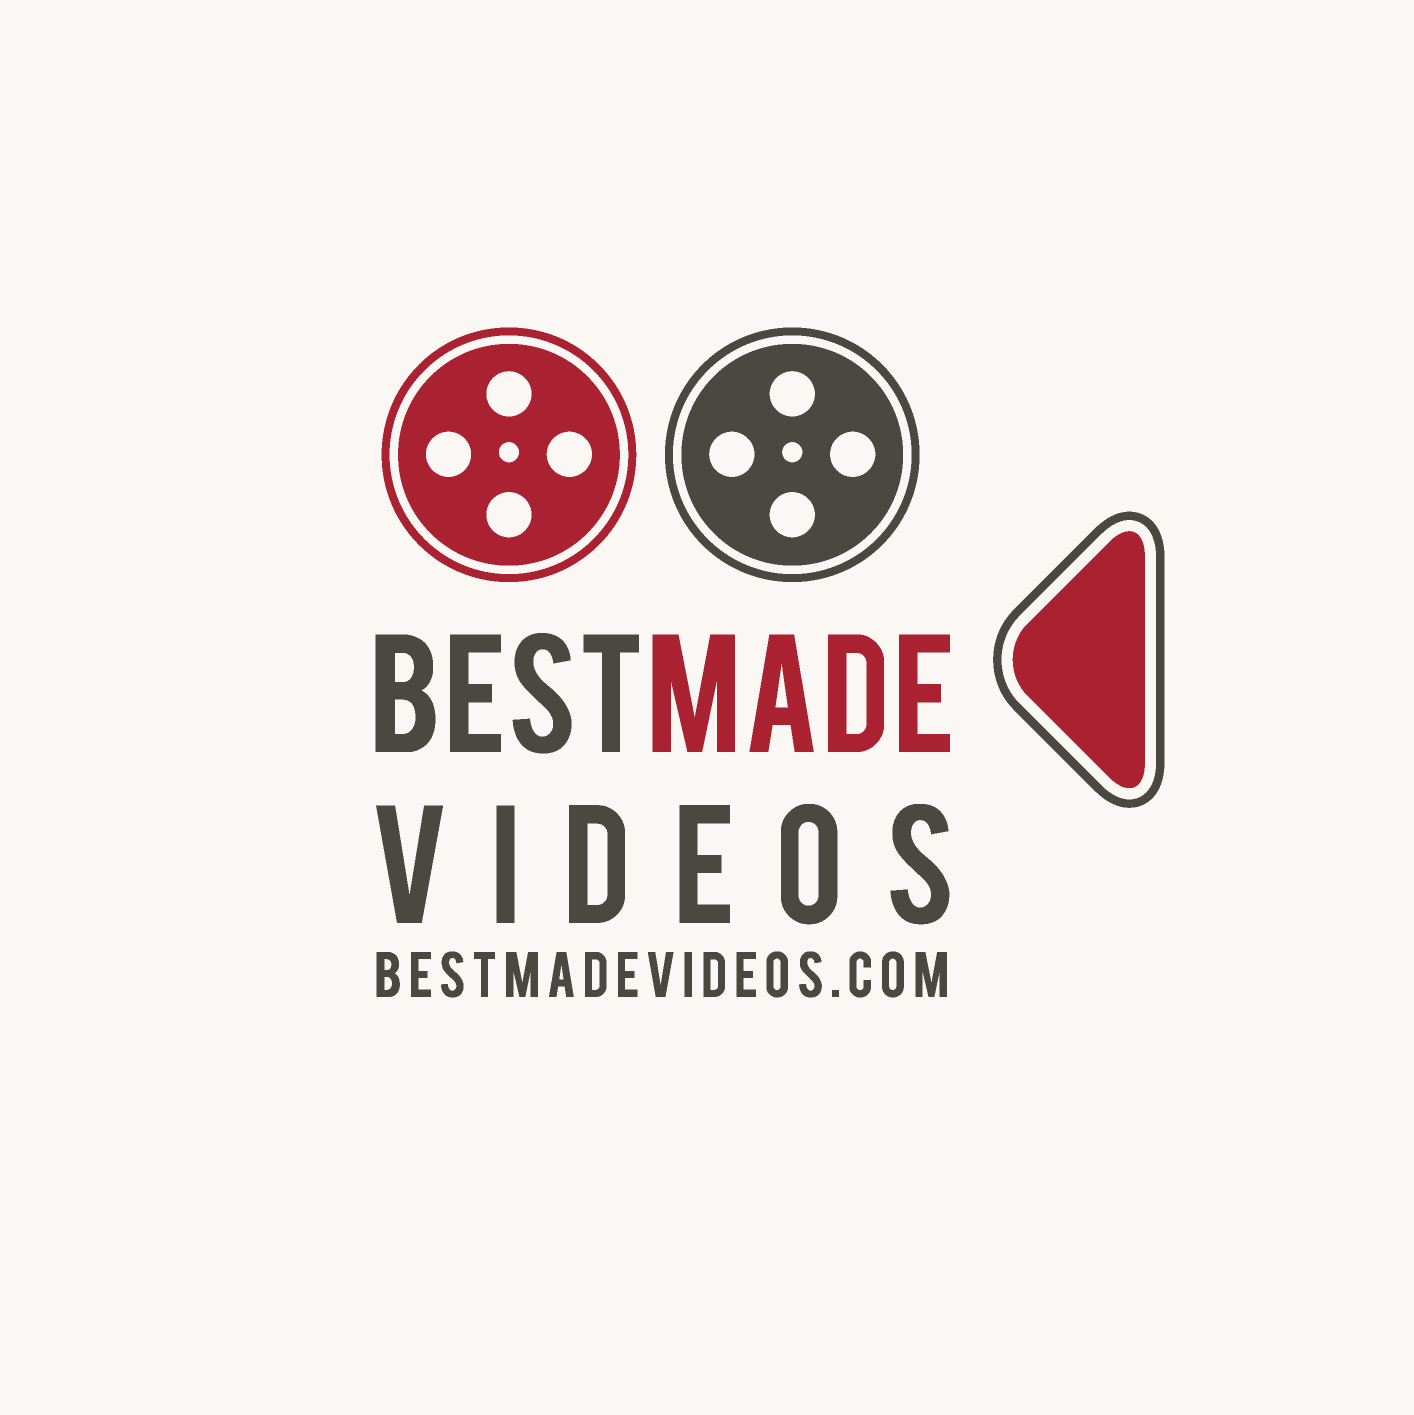 Bestmadevideos large